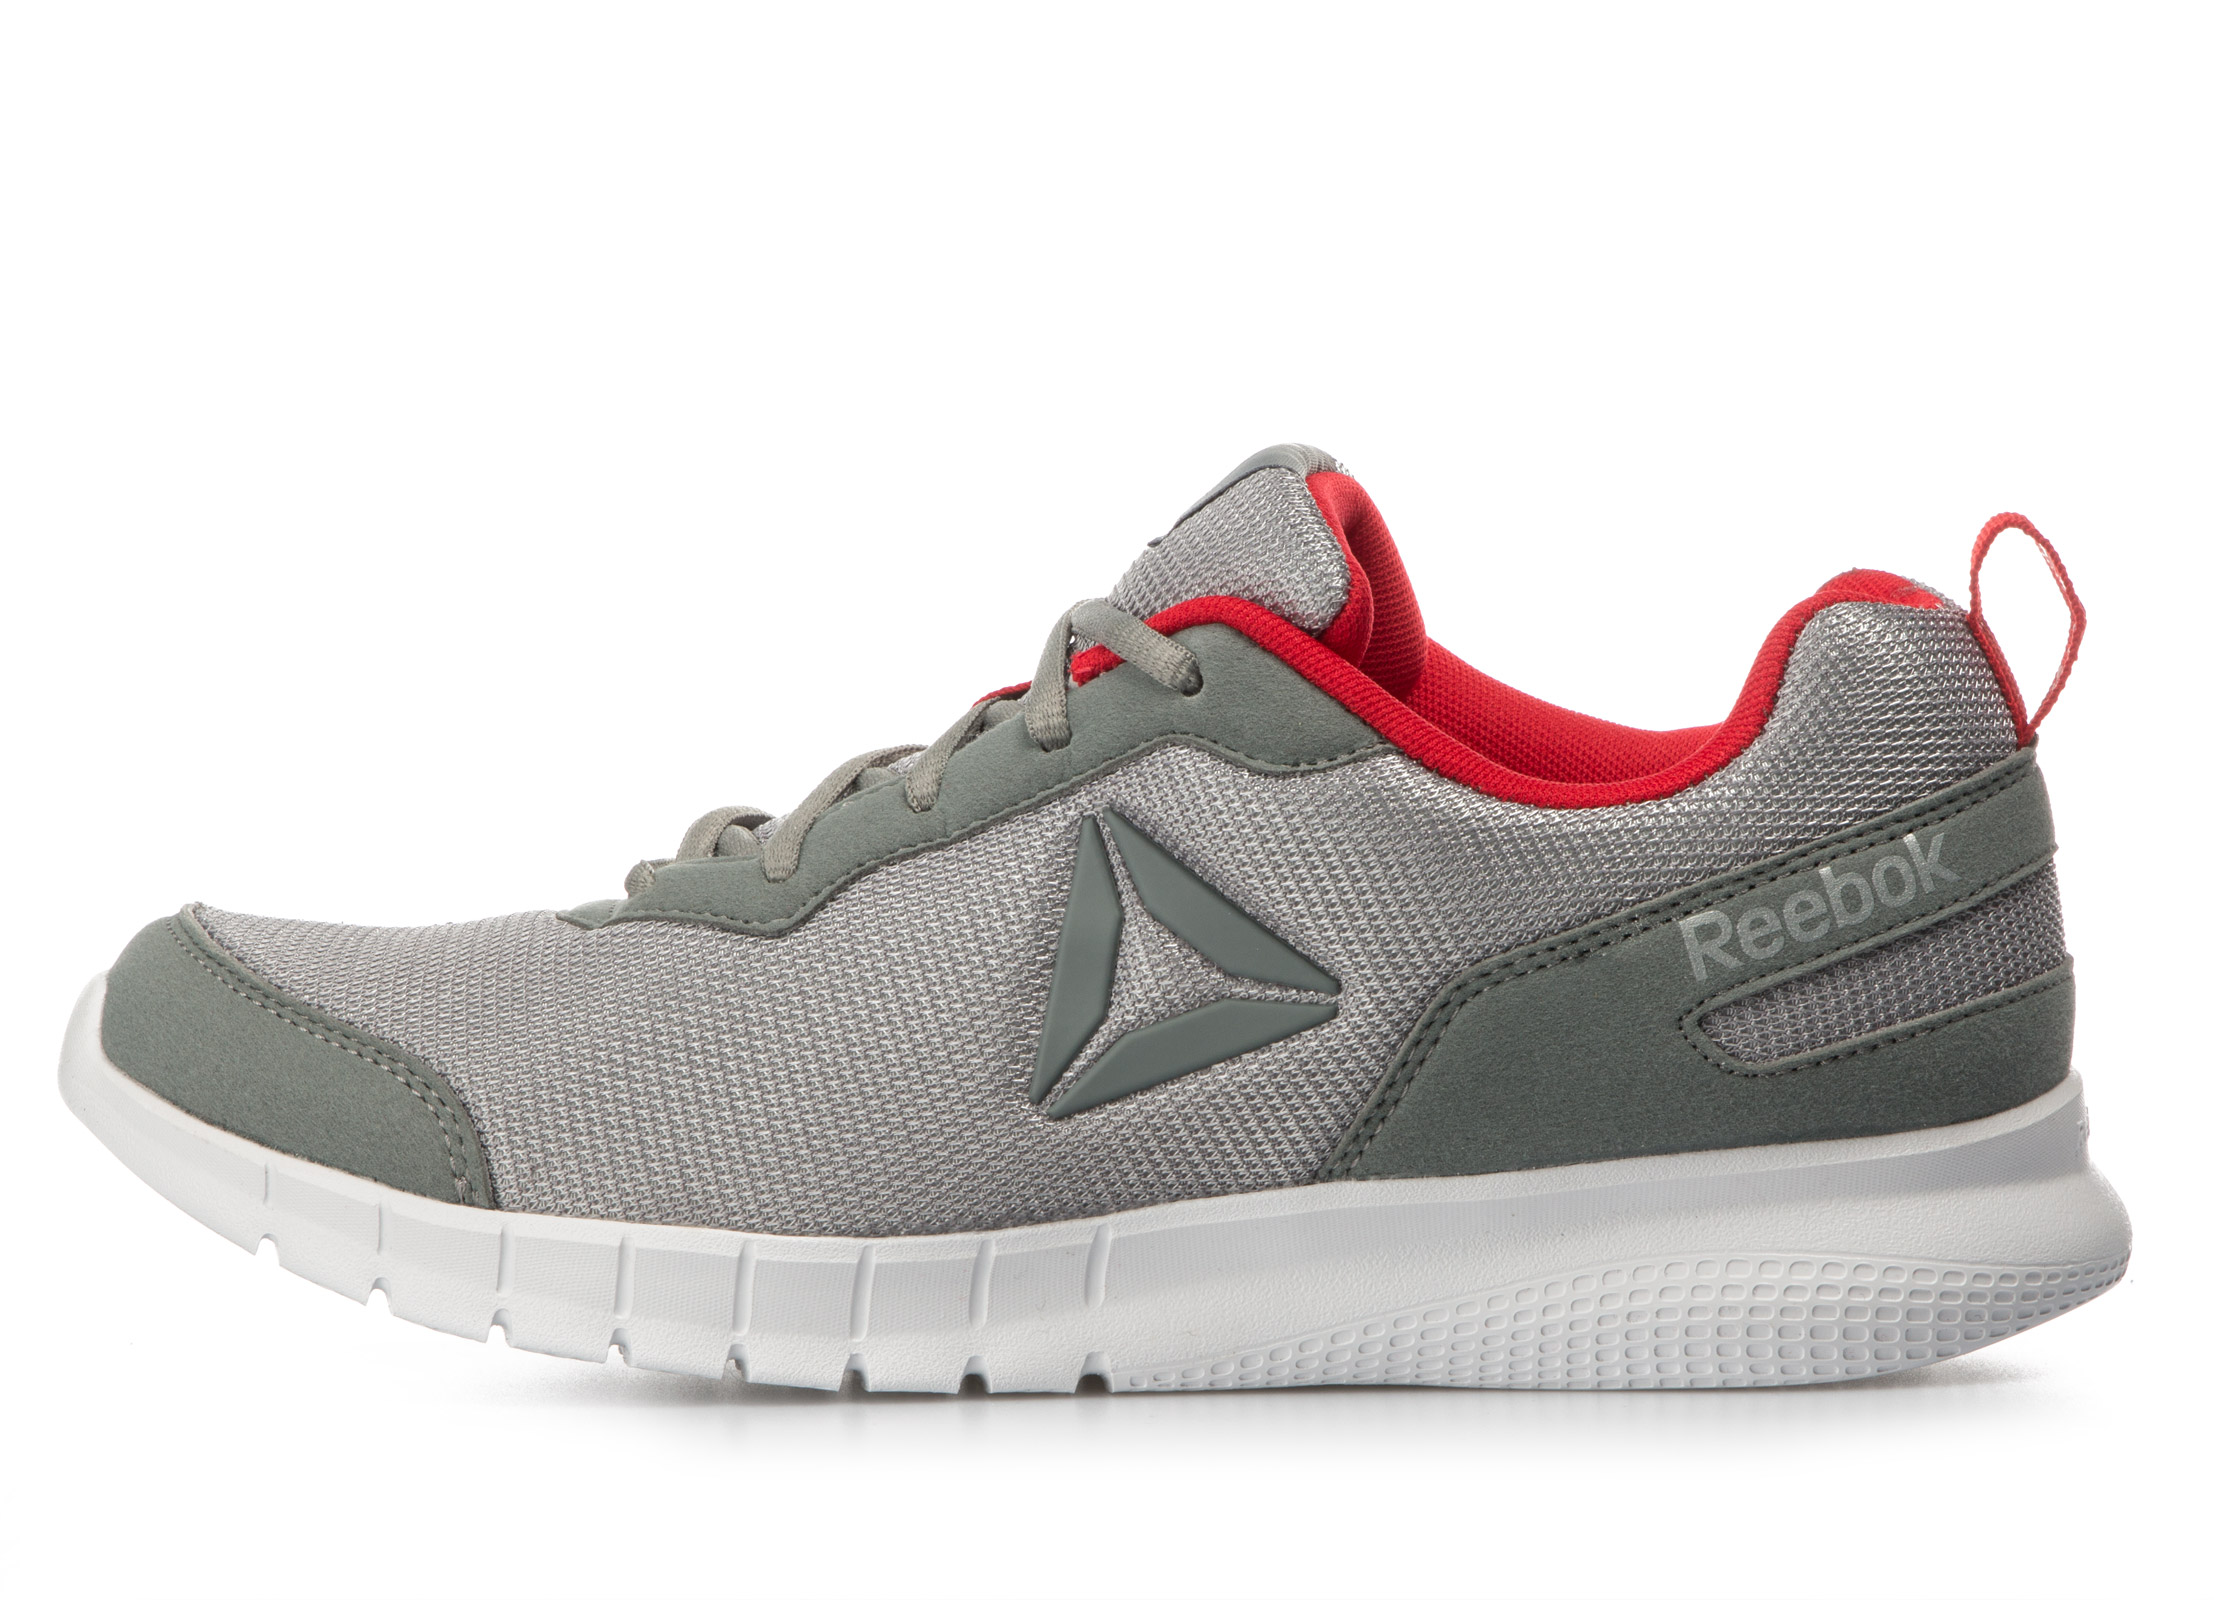 Reebok Sport AD SWIFTWAY RUN CN5700 Ανθρακί